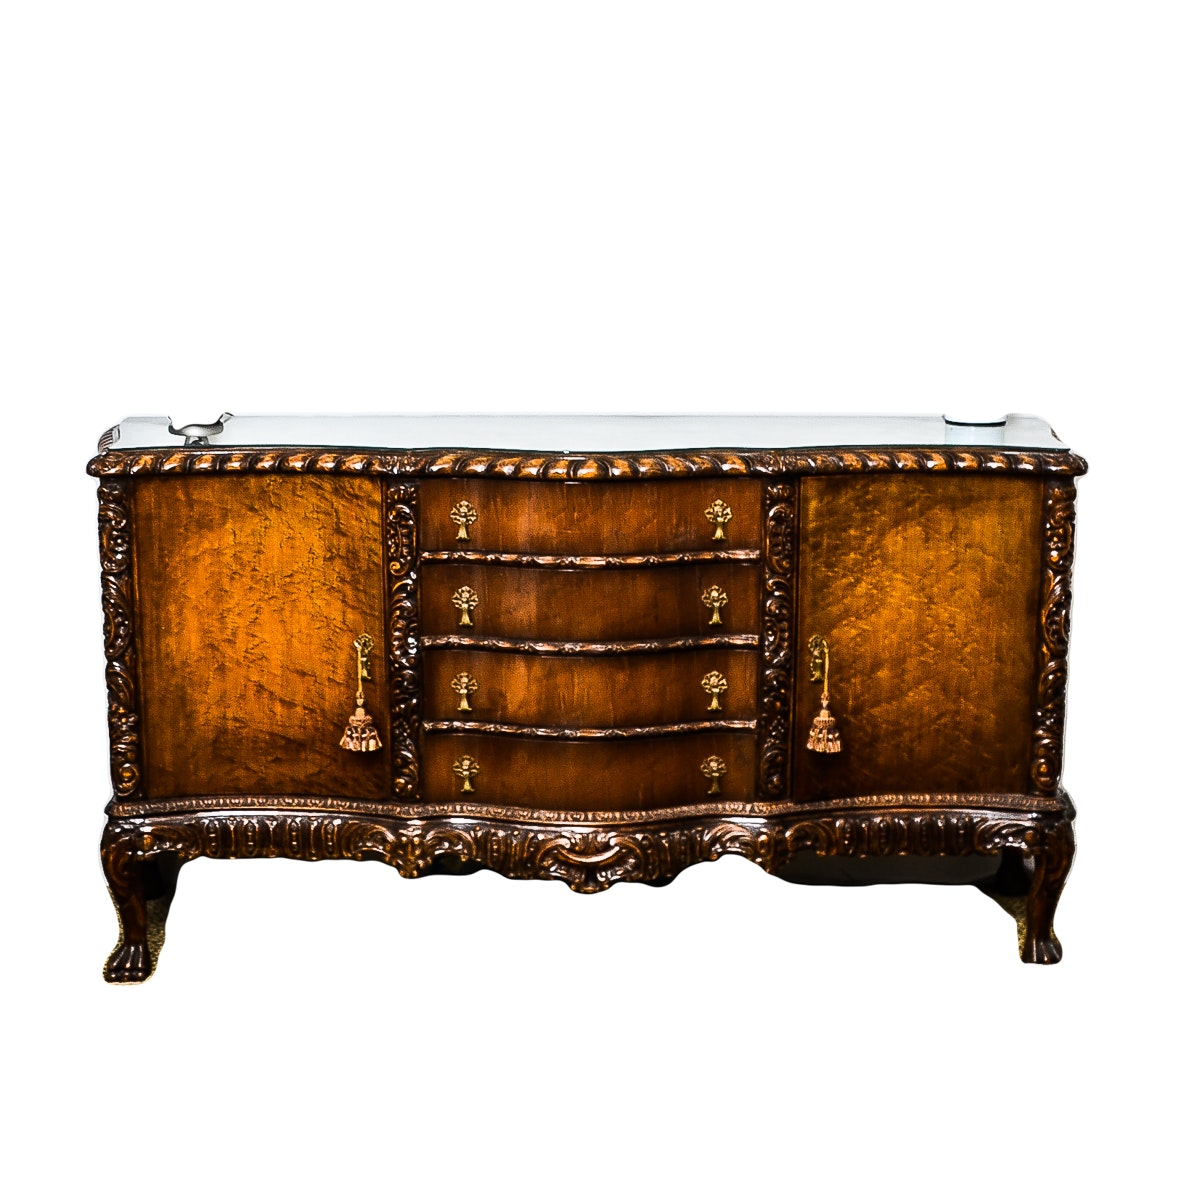 Antique Rococo Inspired Sideboard With Serpentine Front